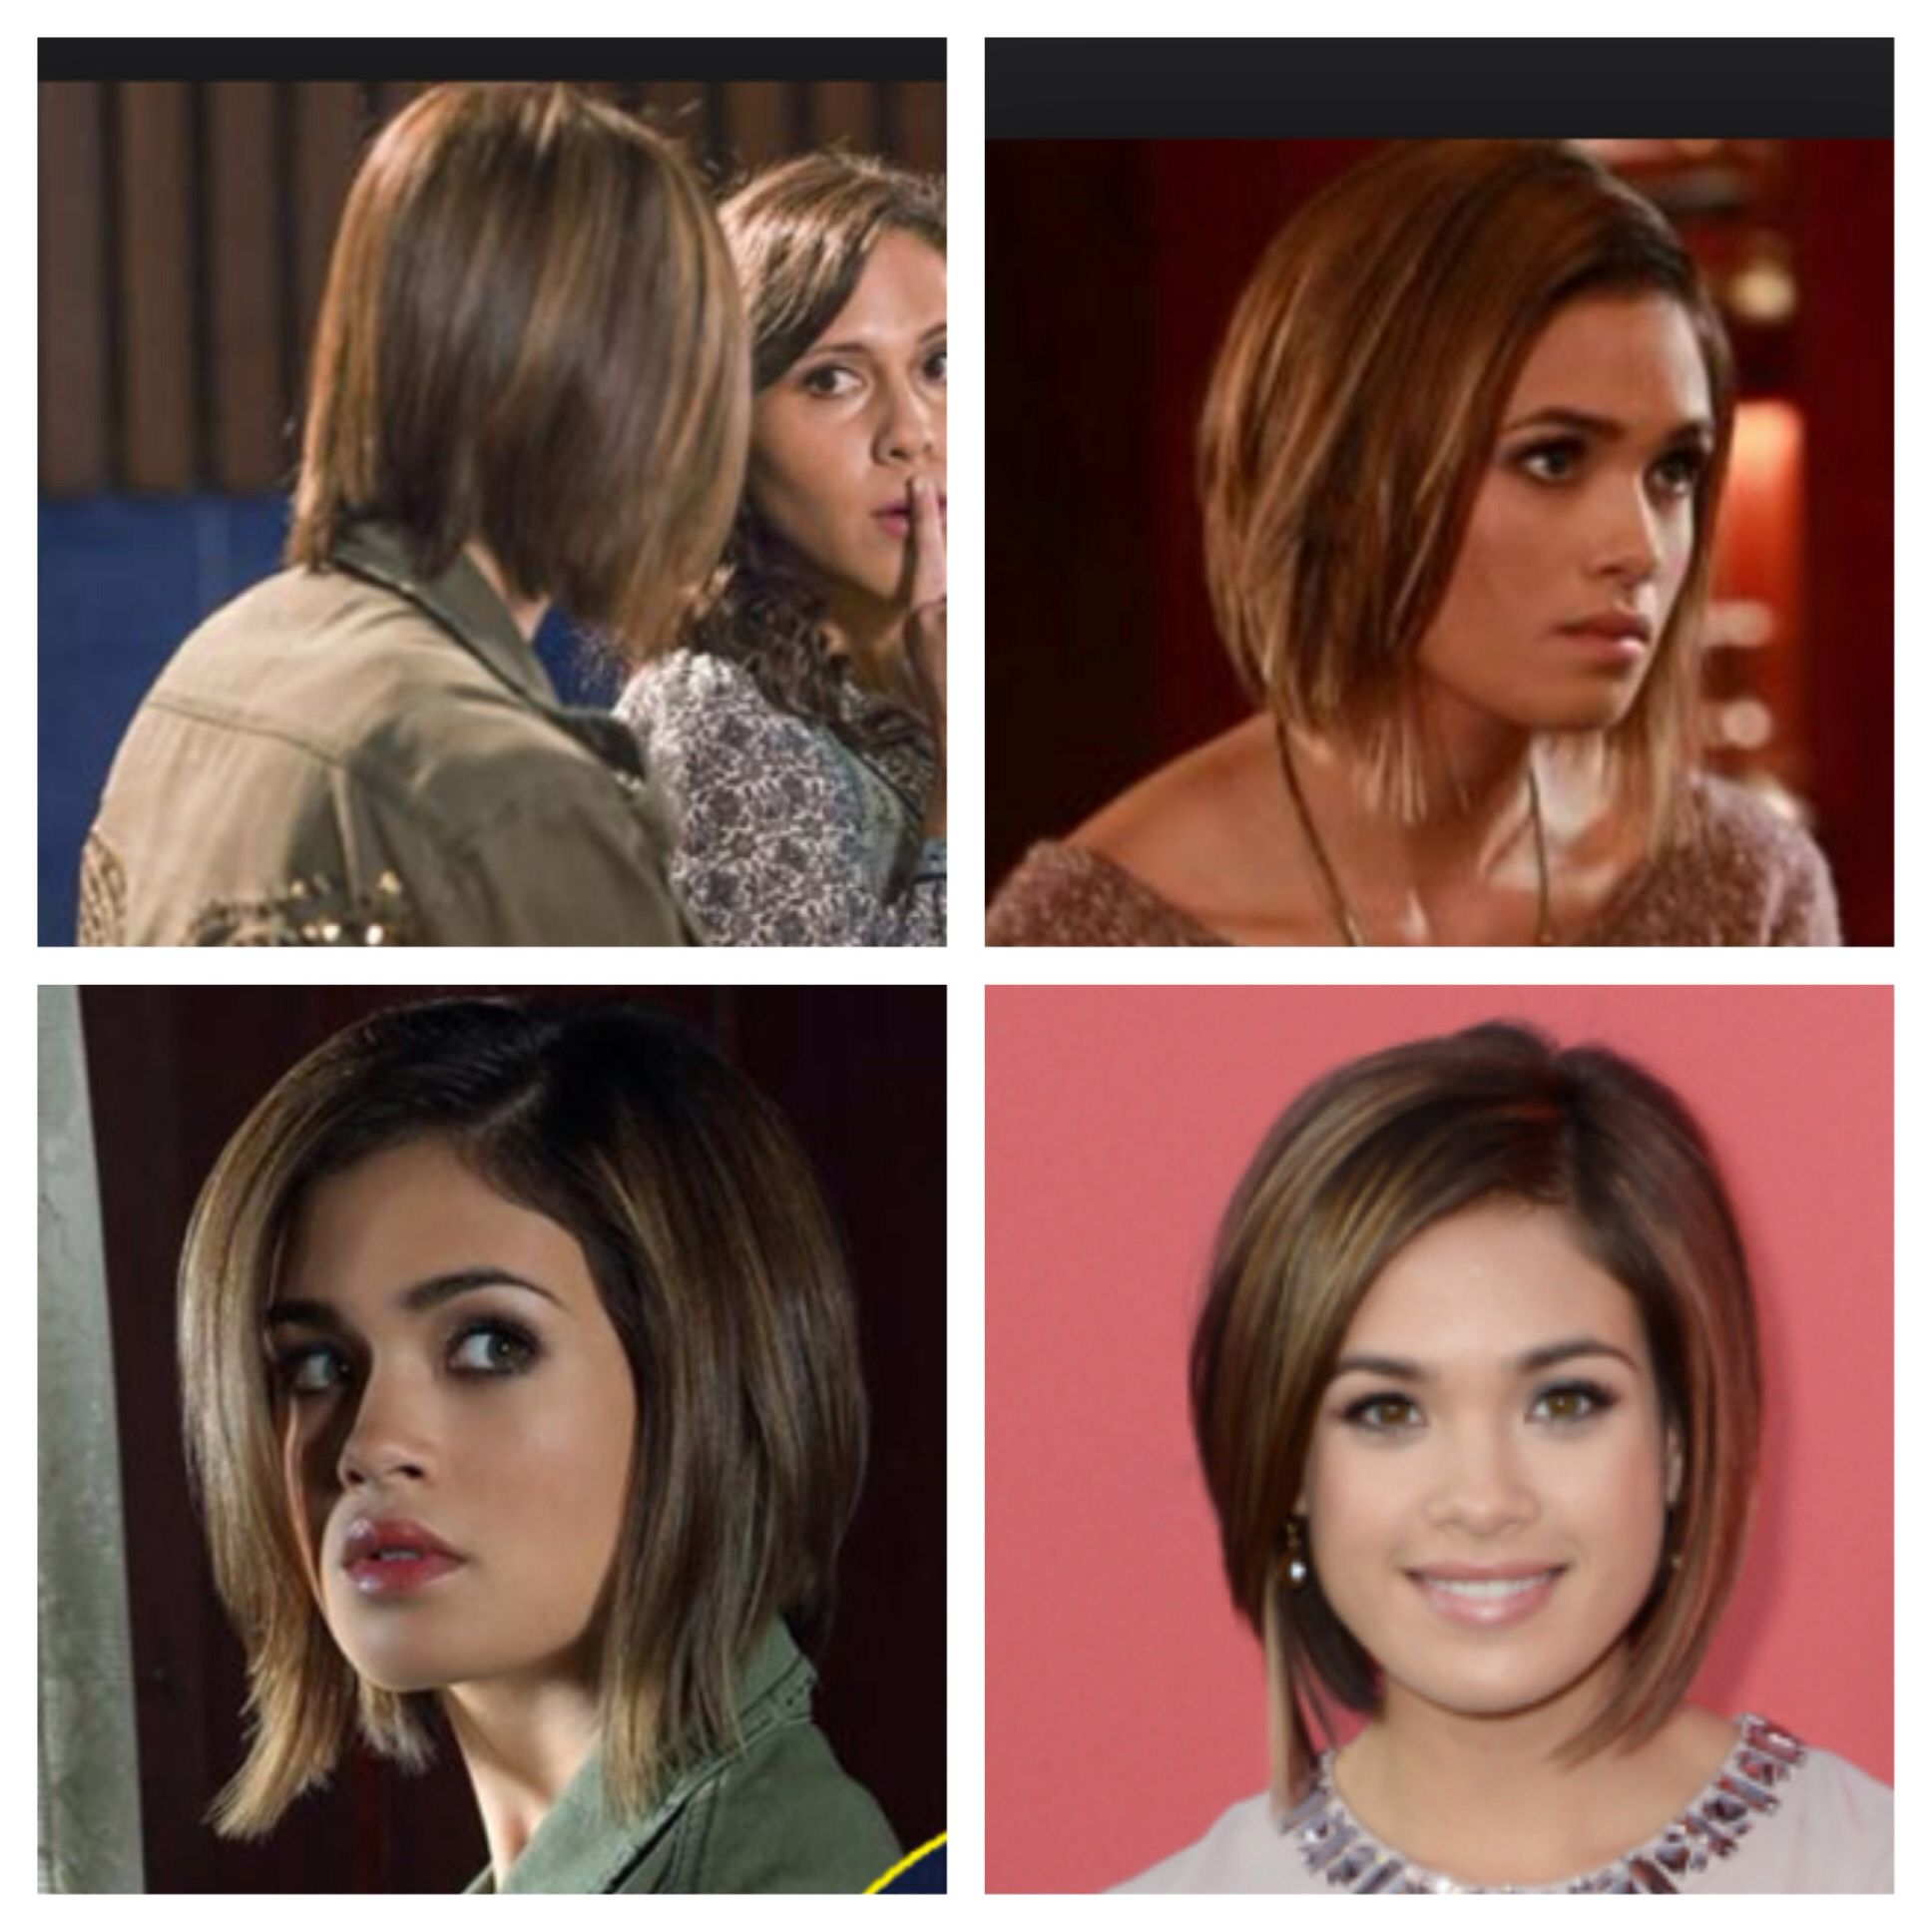 nicole gale anderson from ravenswood. i really love her hair. next